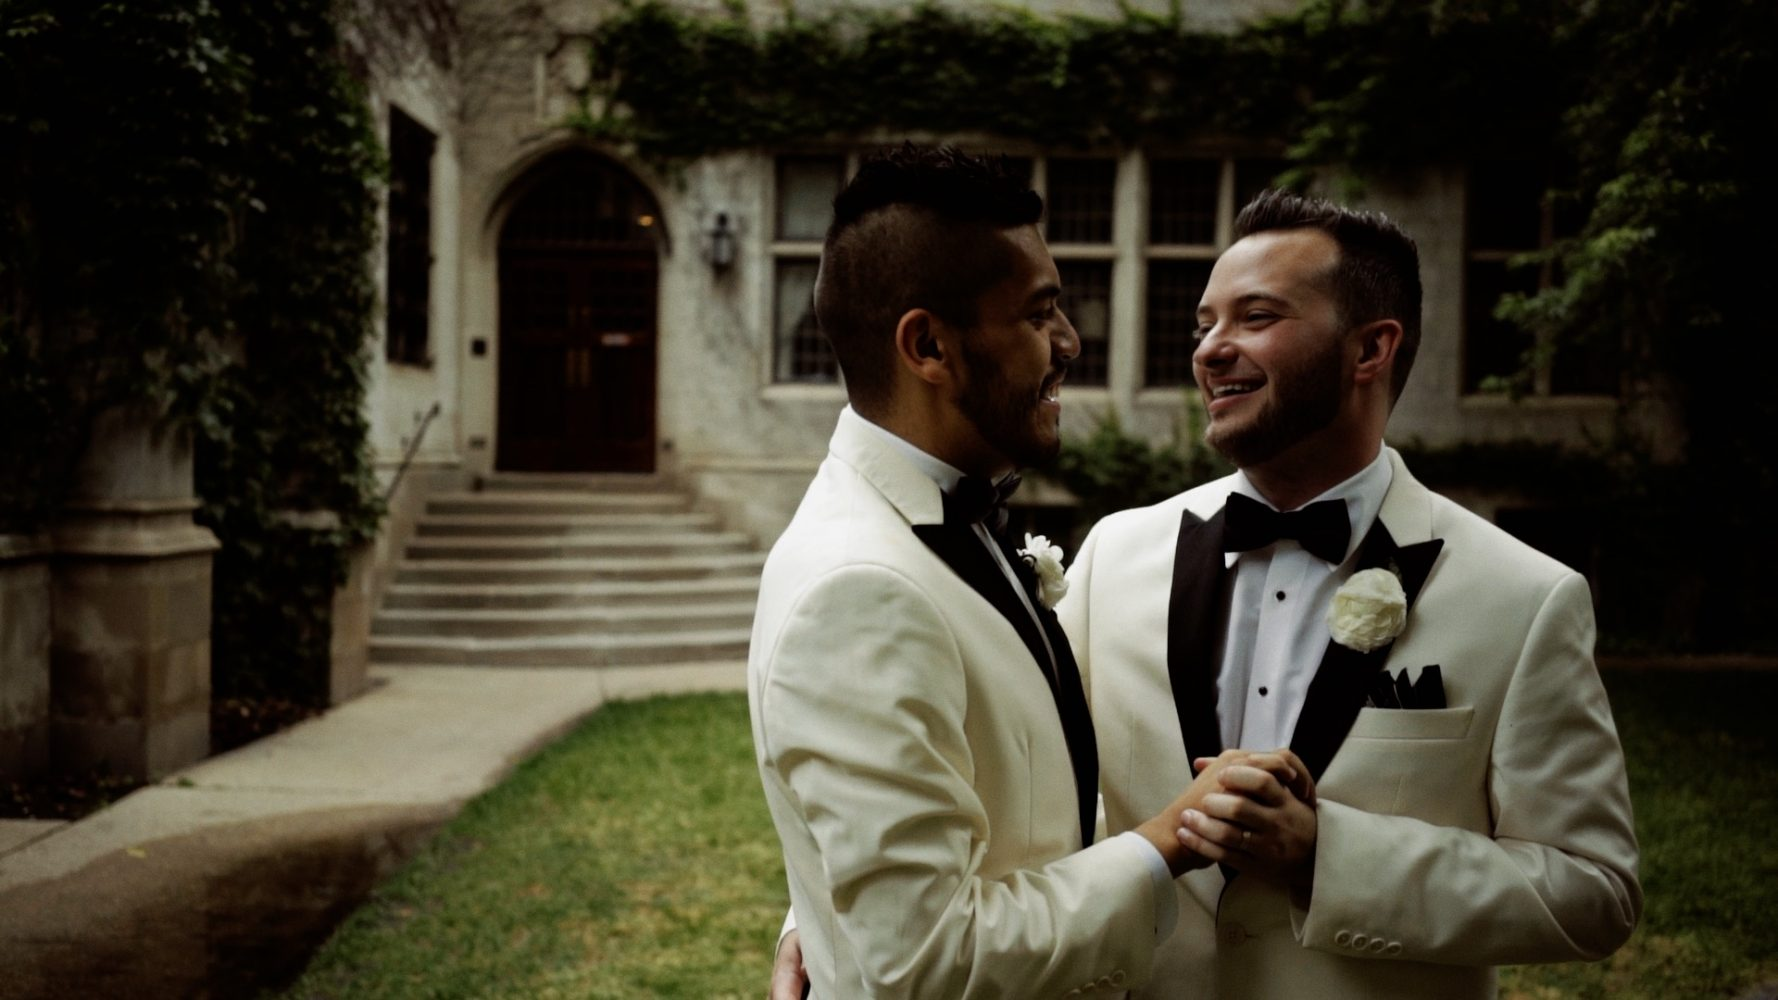 Ben + Enrique | Chicago, Illinois | the millennium knickerbocker